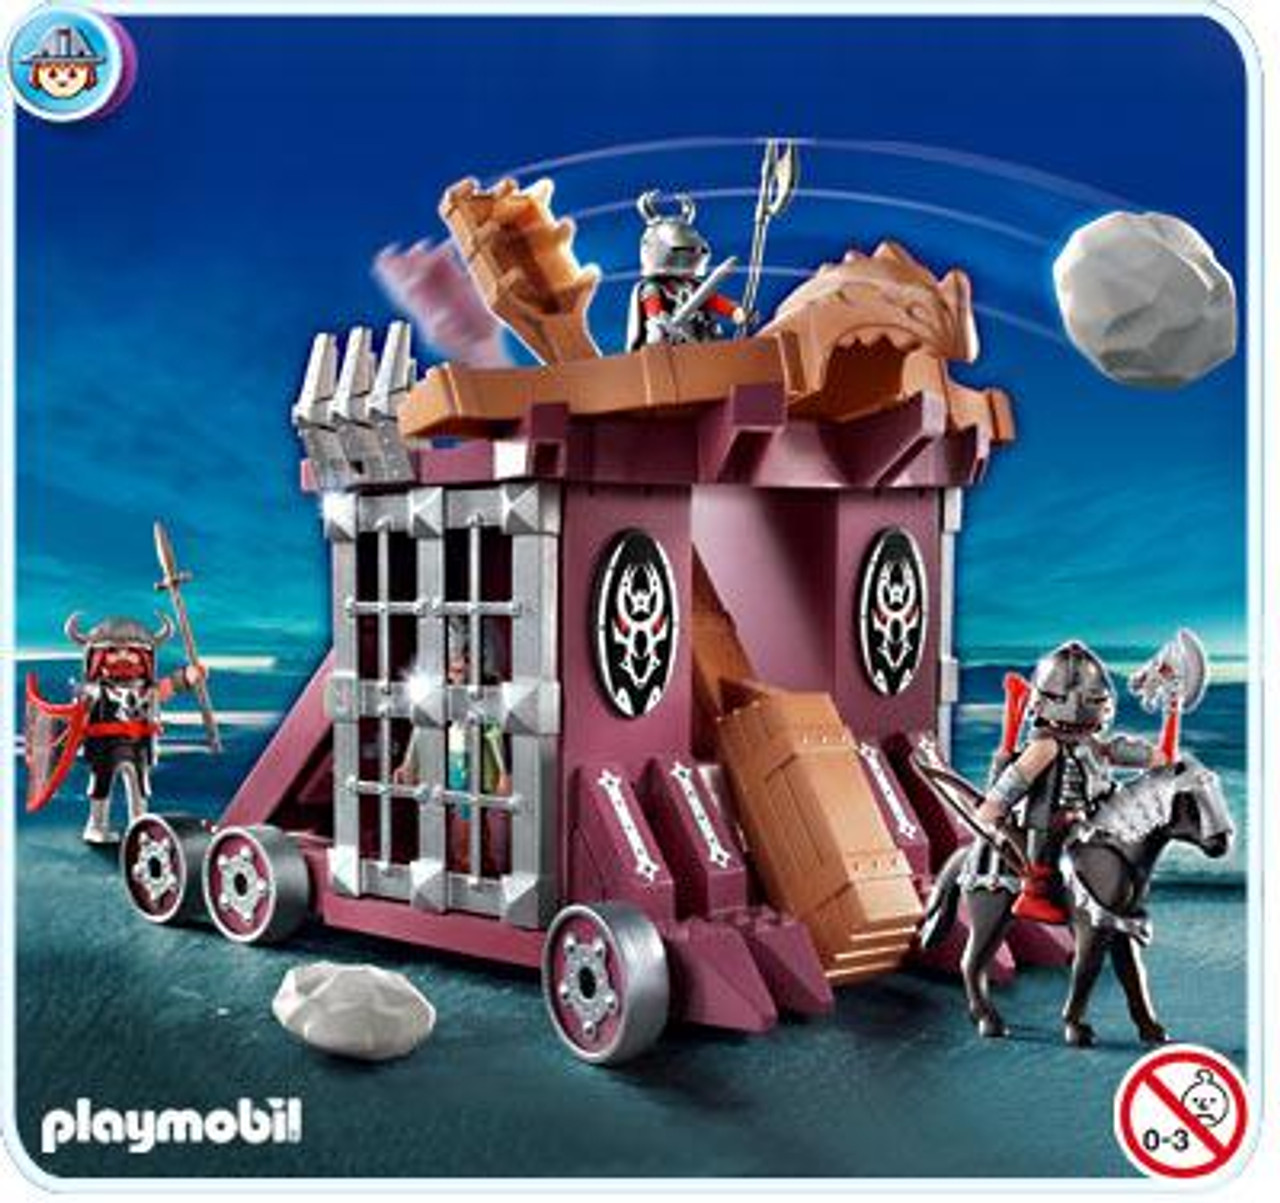 Playmobil Dragon Land Giant Catapult with Cell Set #4837